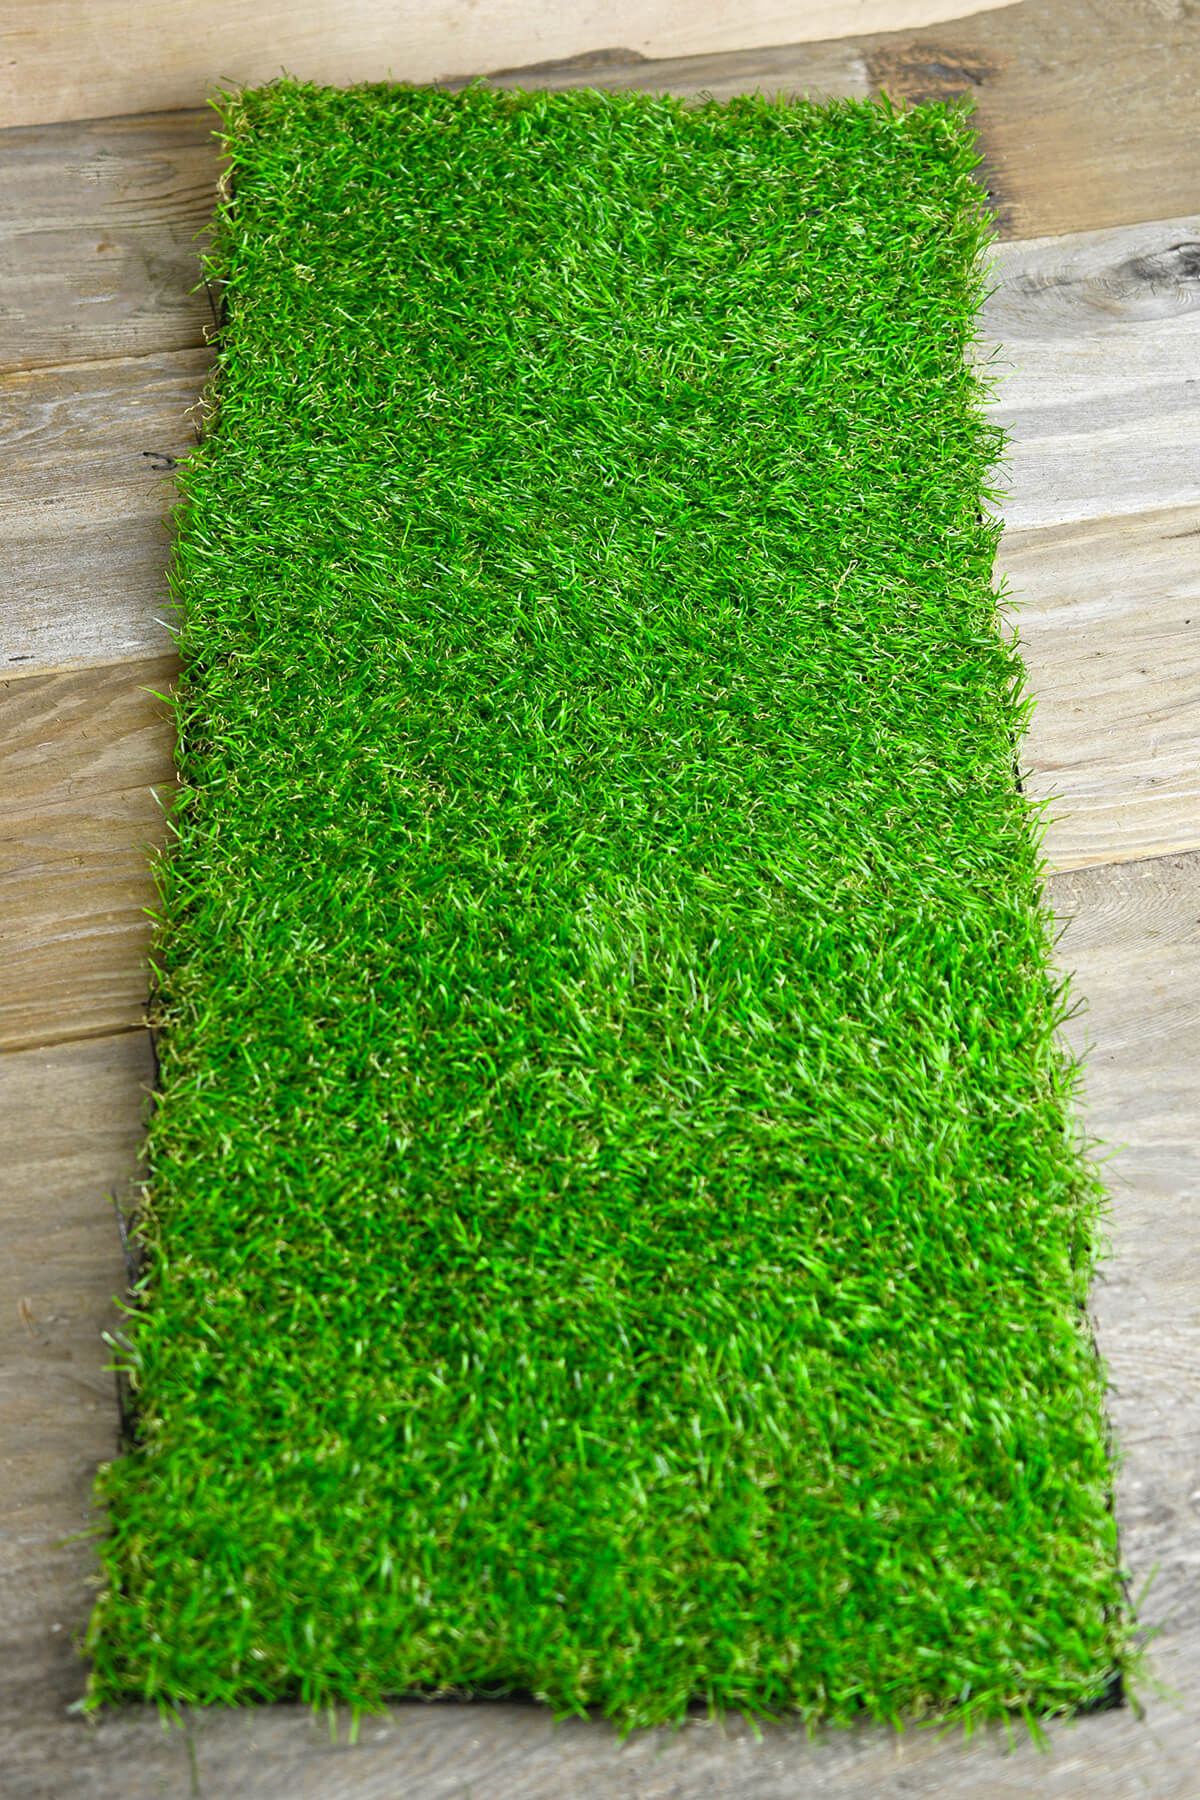 Faux grass mat 12x32 for Faux grass for crafts